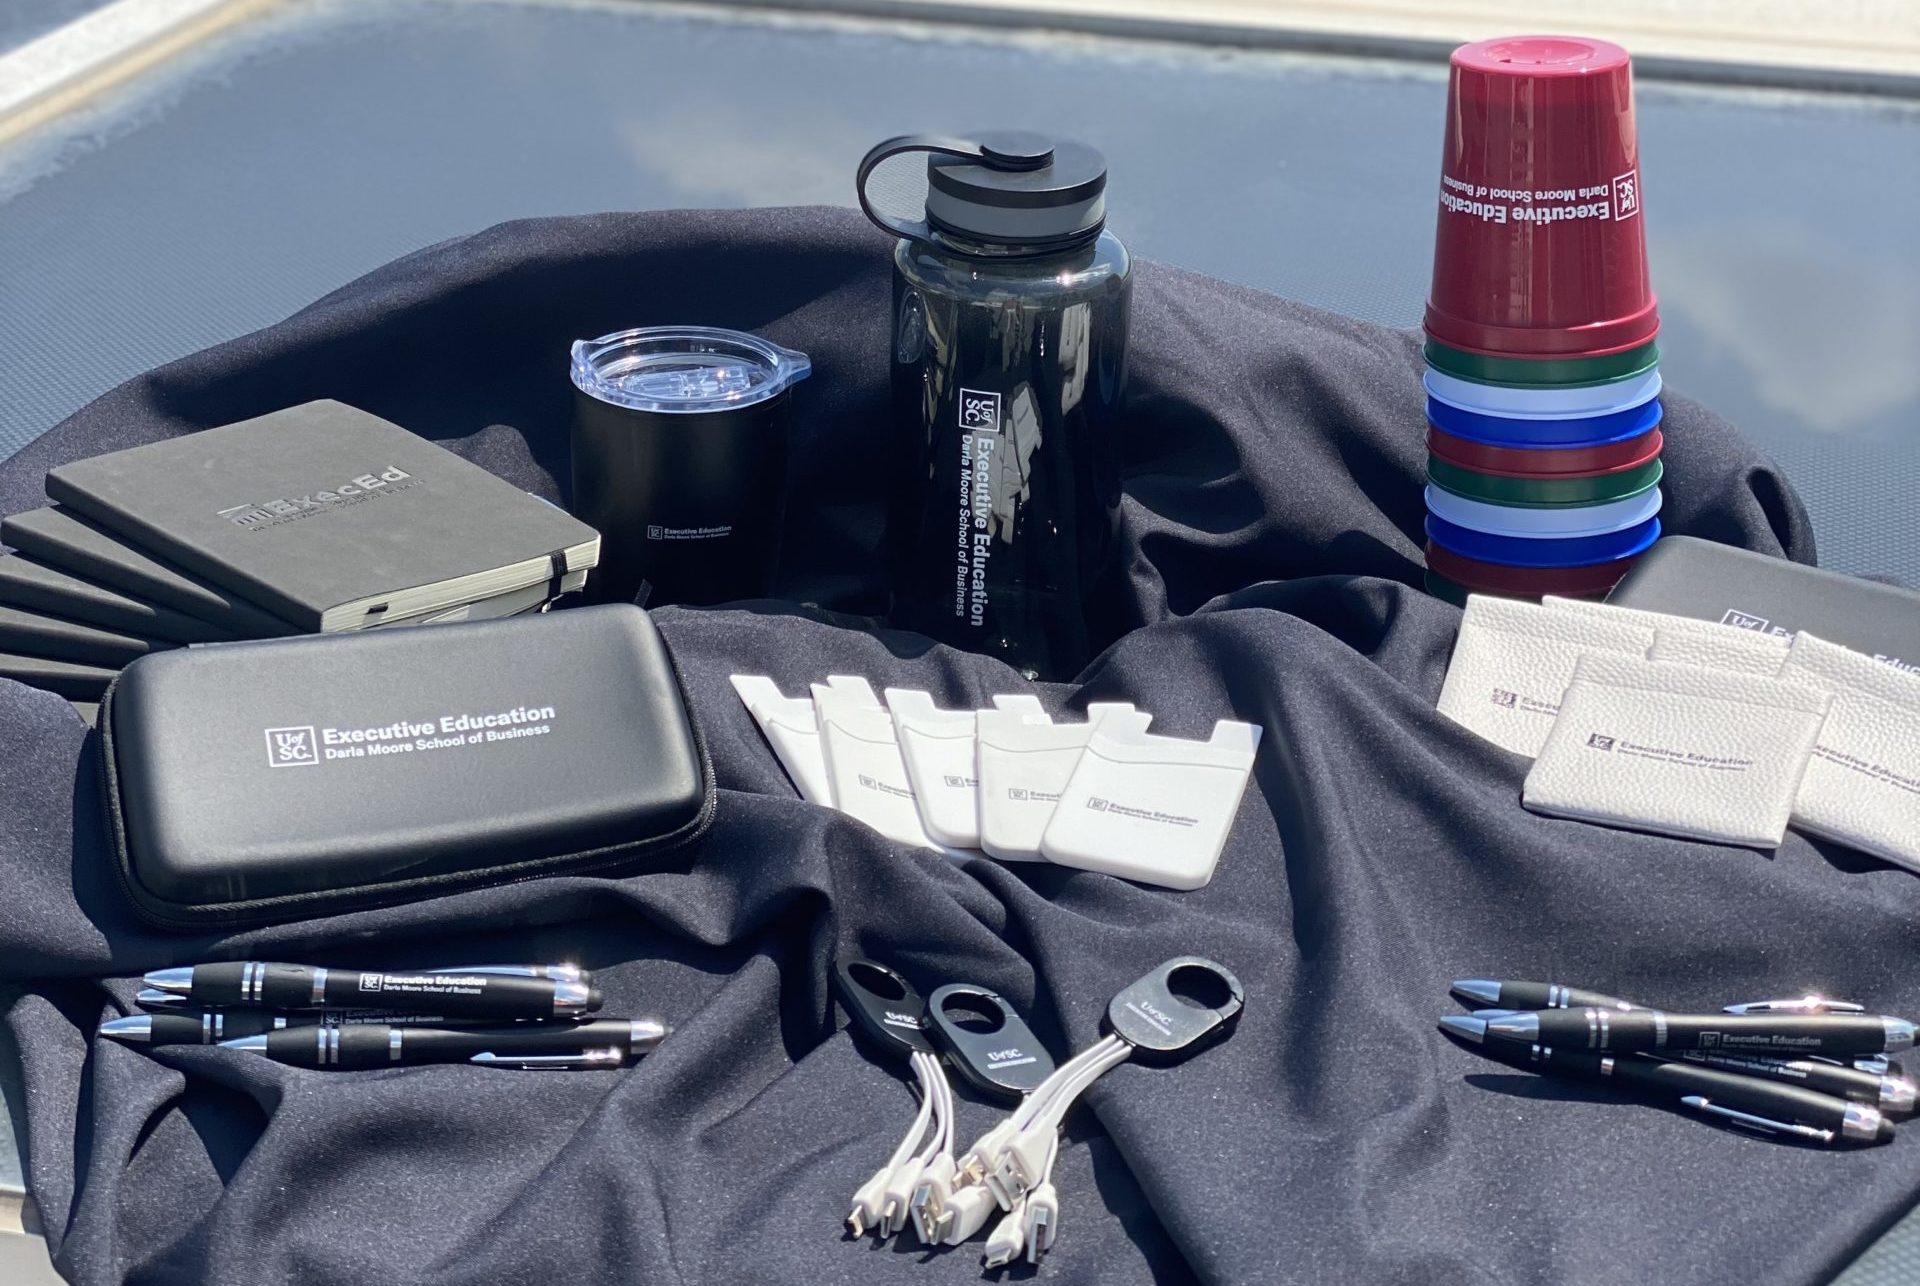 ExecEd promo items displayed on table